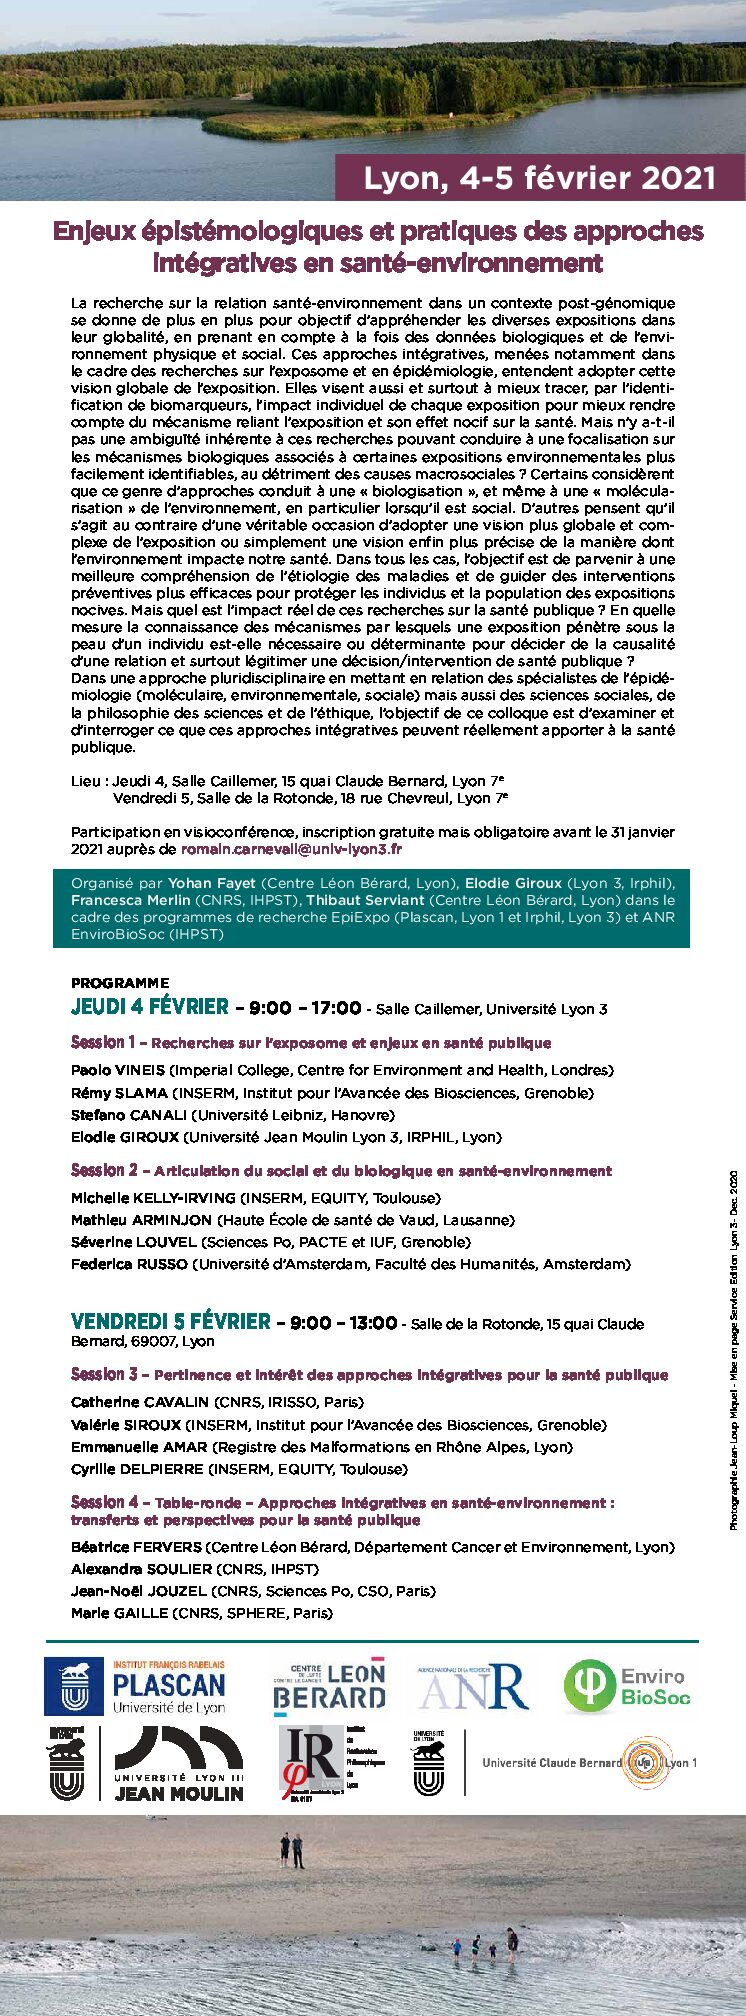 "Meeting ""Epistemological and practical issues of integrative approaches in environmental health""  – Lyon February 4-5,  2021"